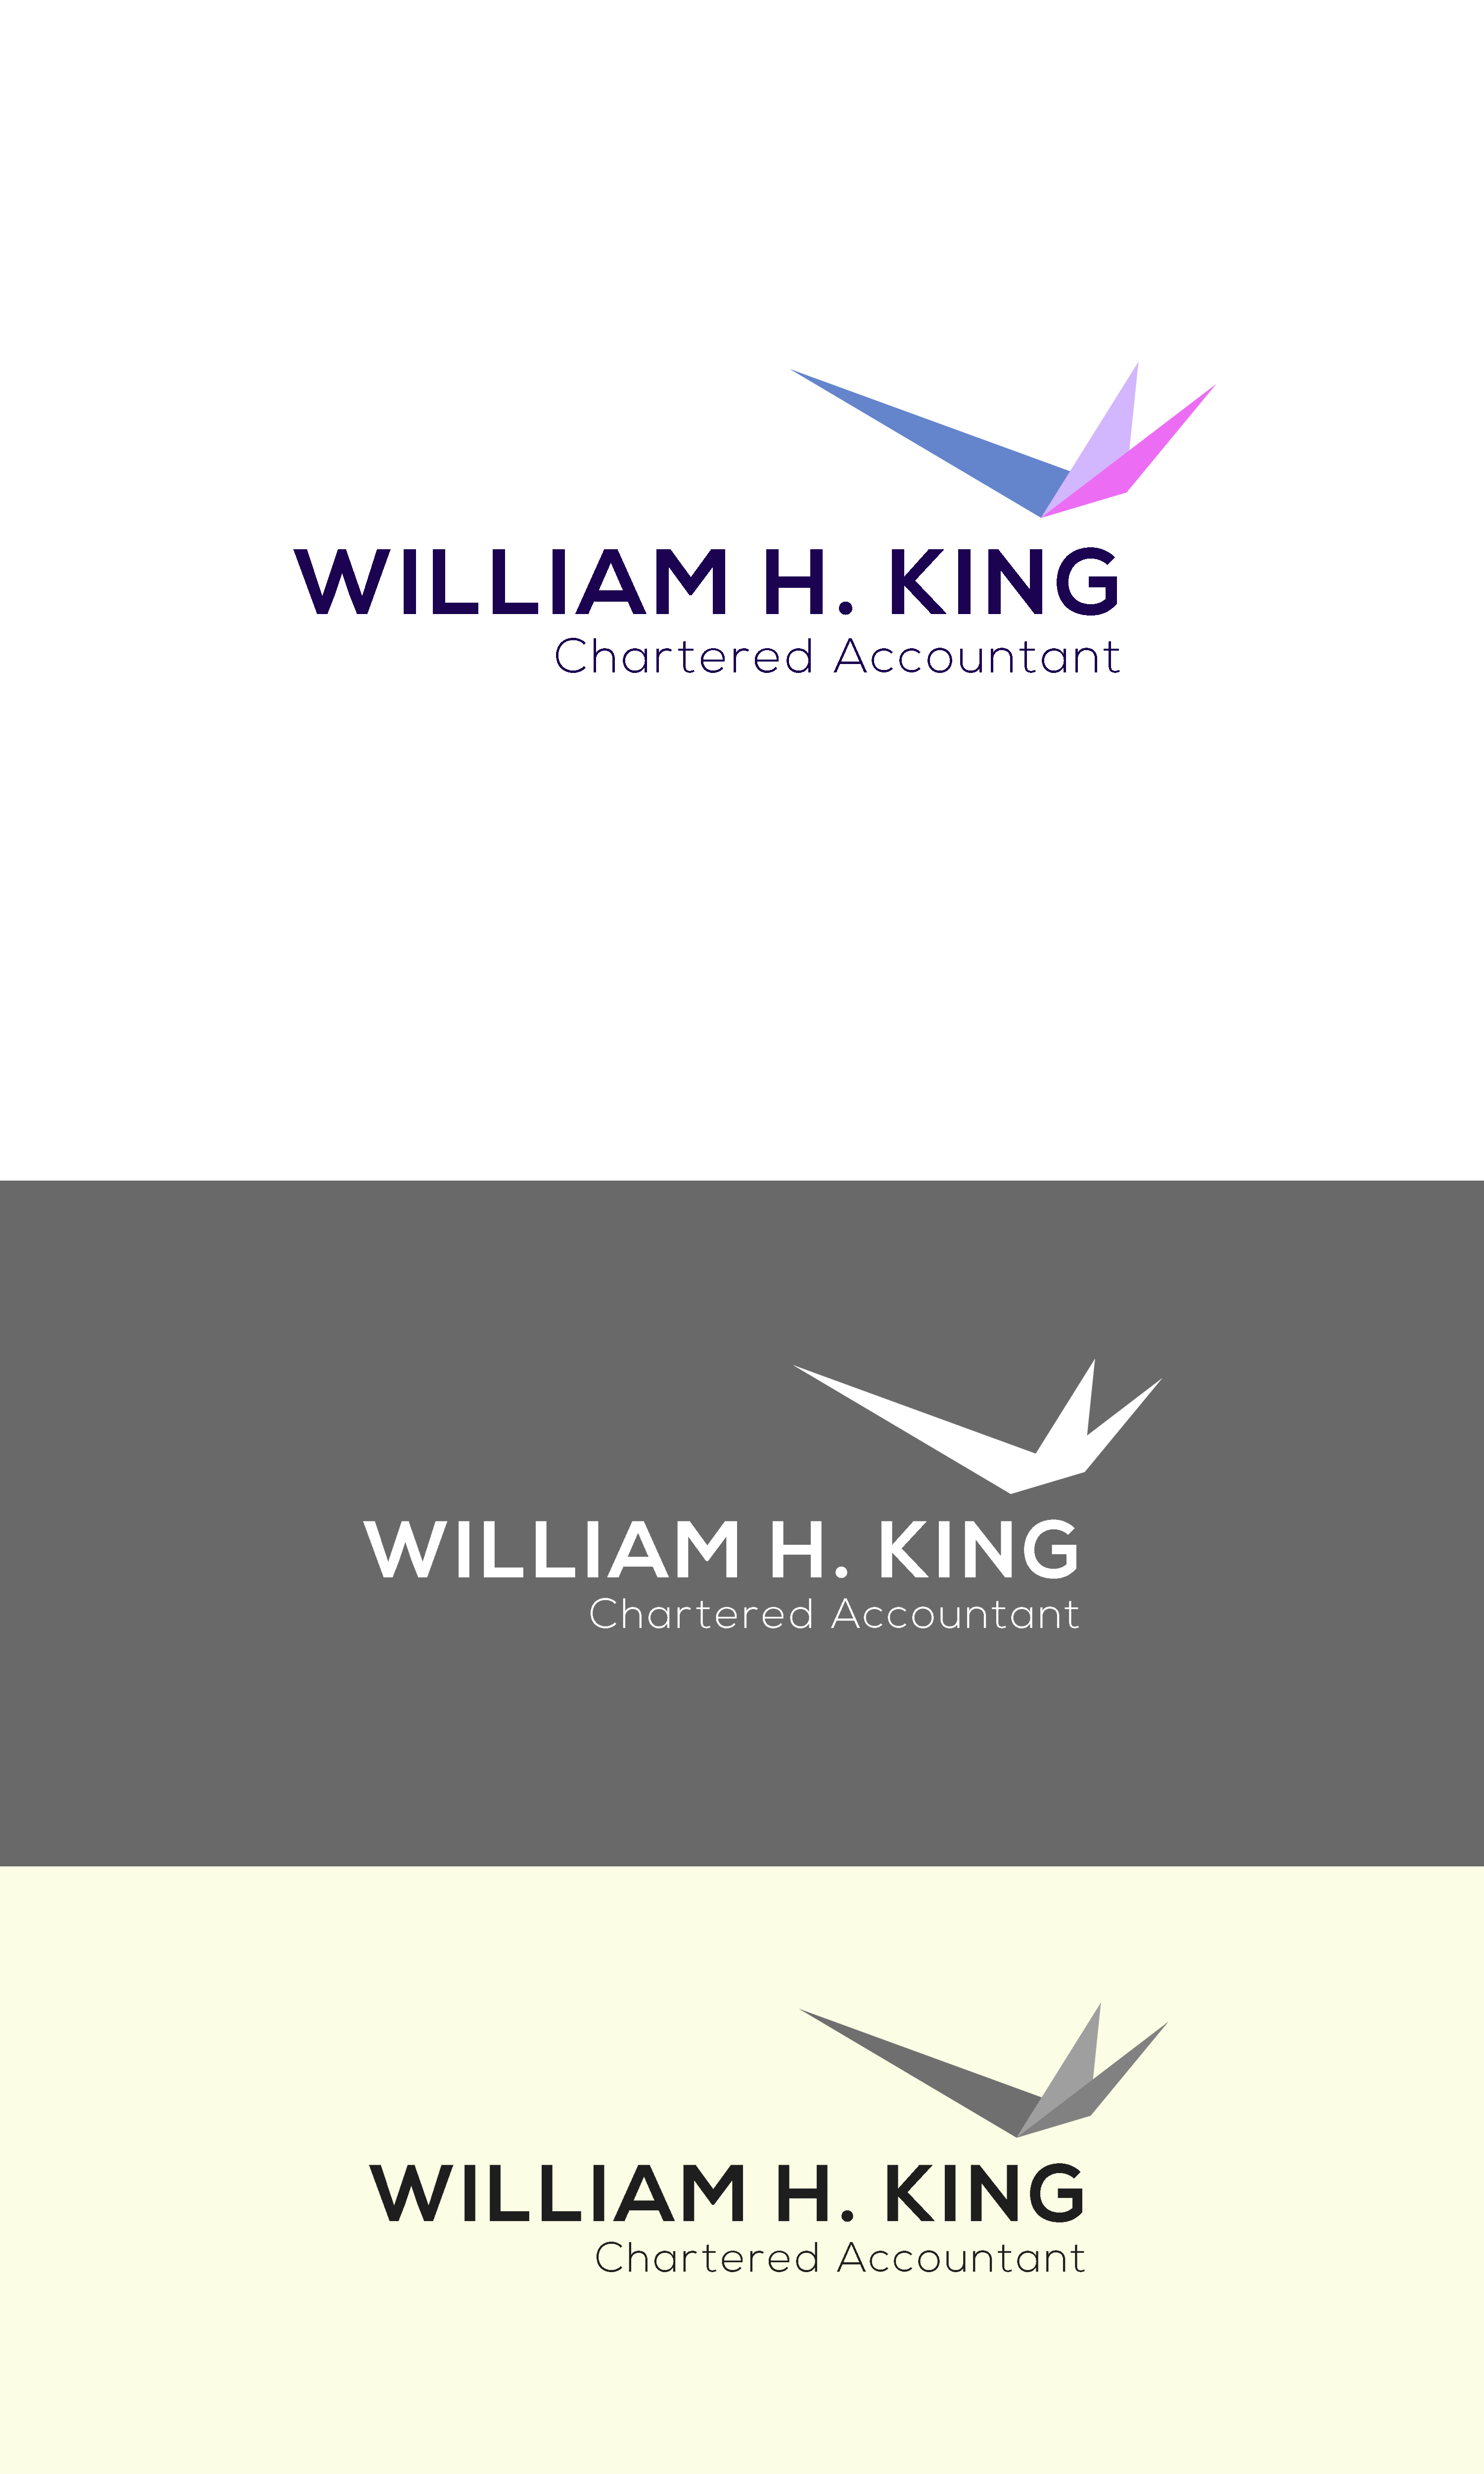 Logo Design by Private User - Entry No. 44 in the Logo Design Contest New Logo Design for William H. King, Chartered Accountant.